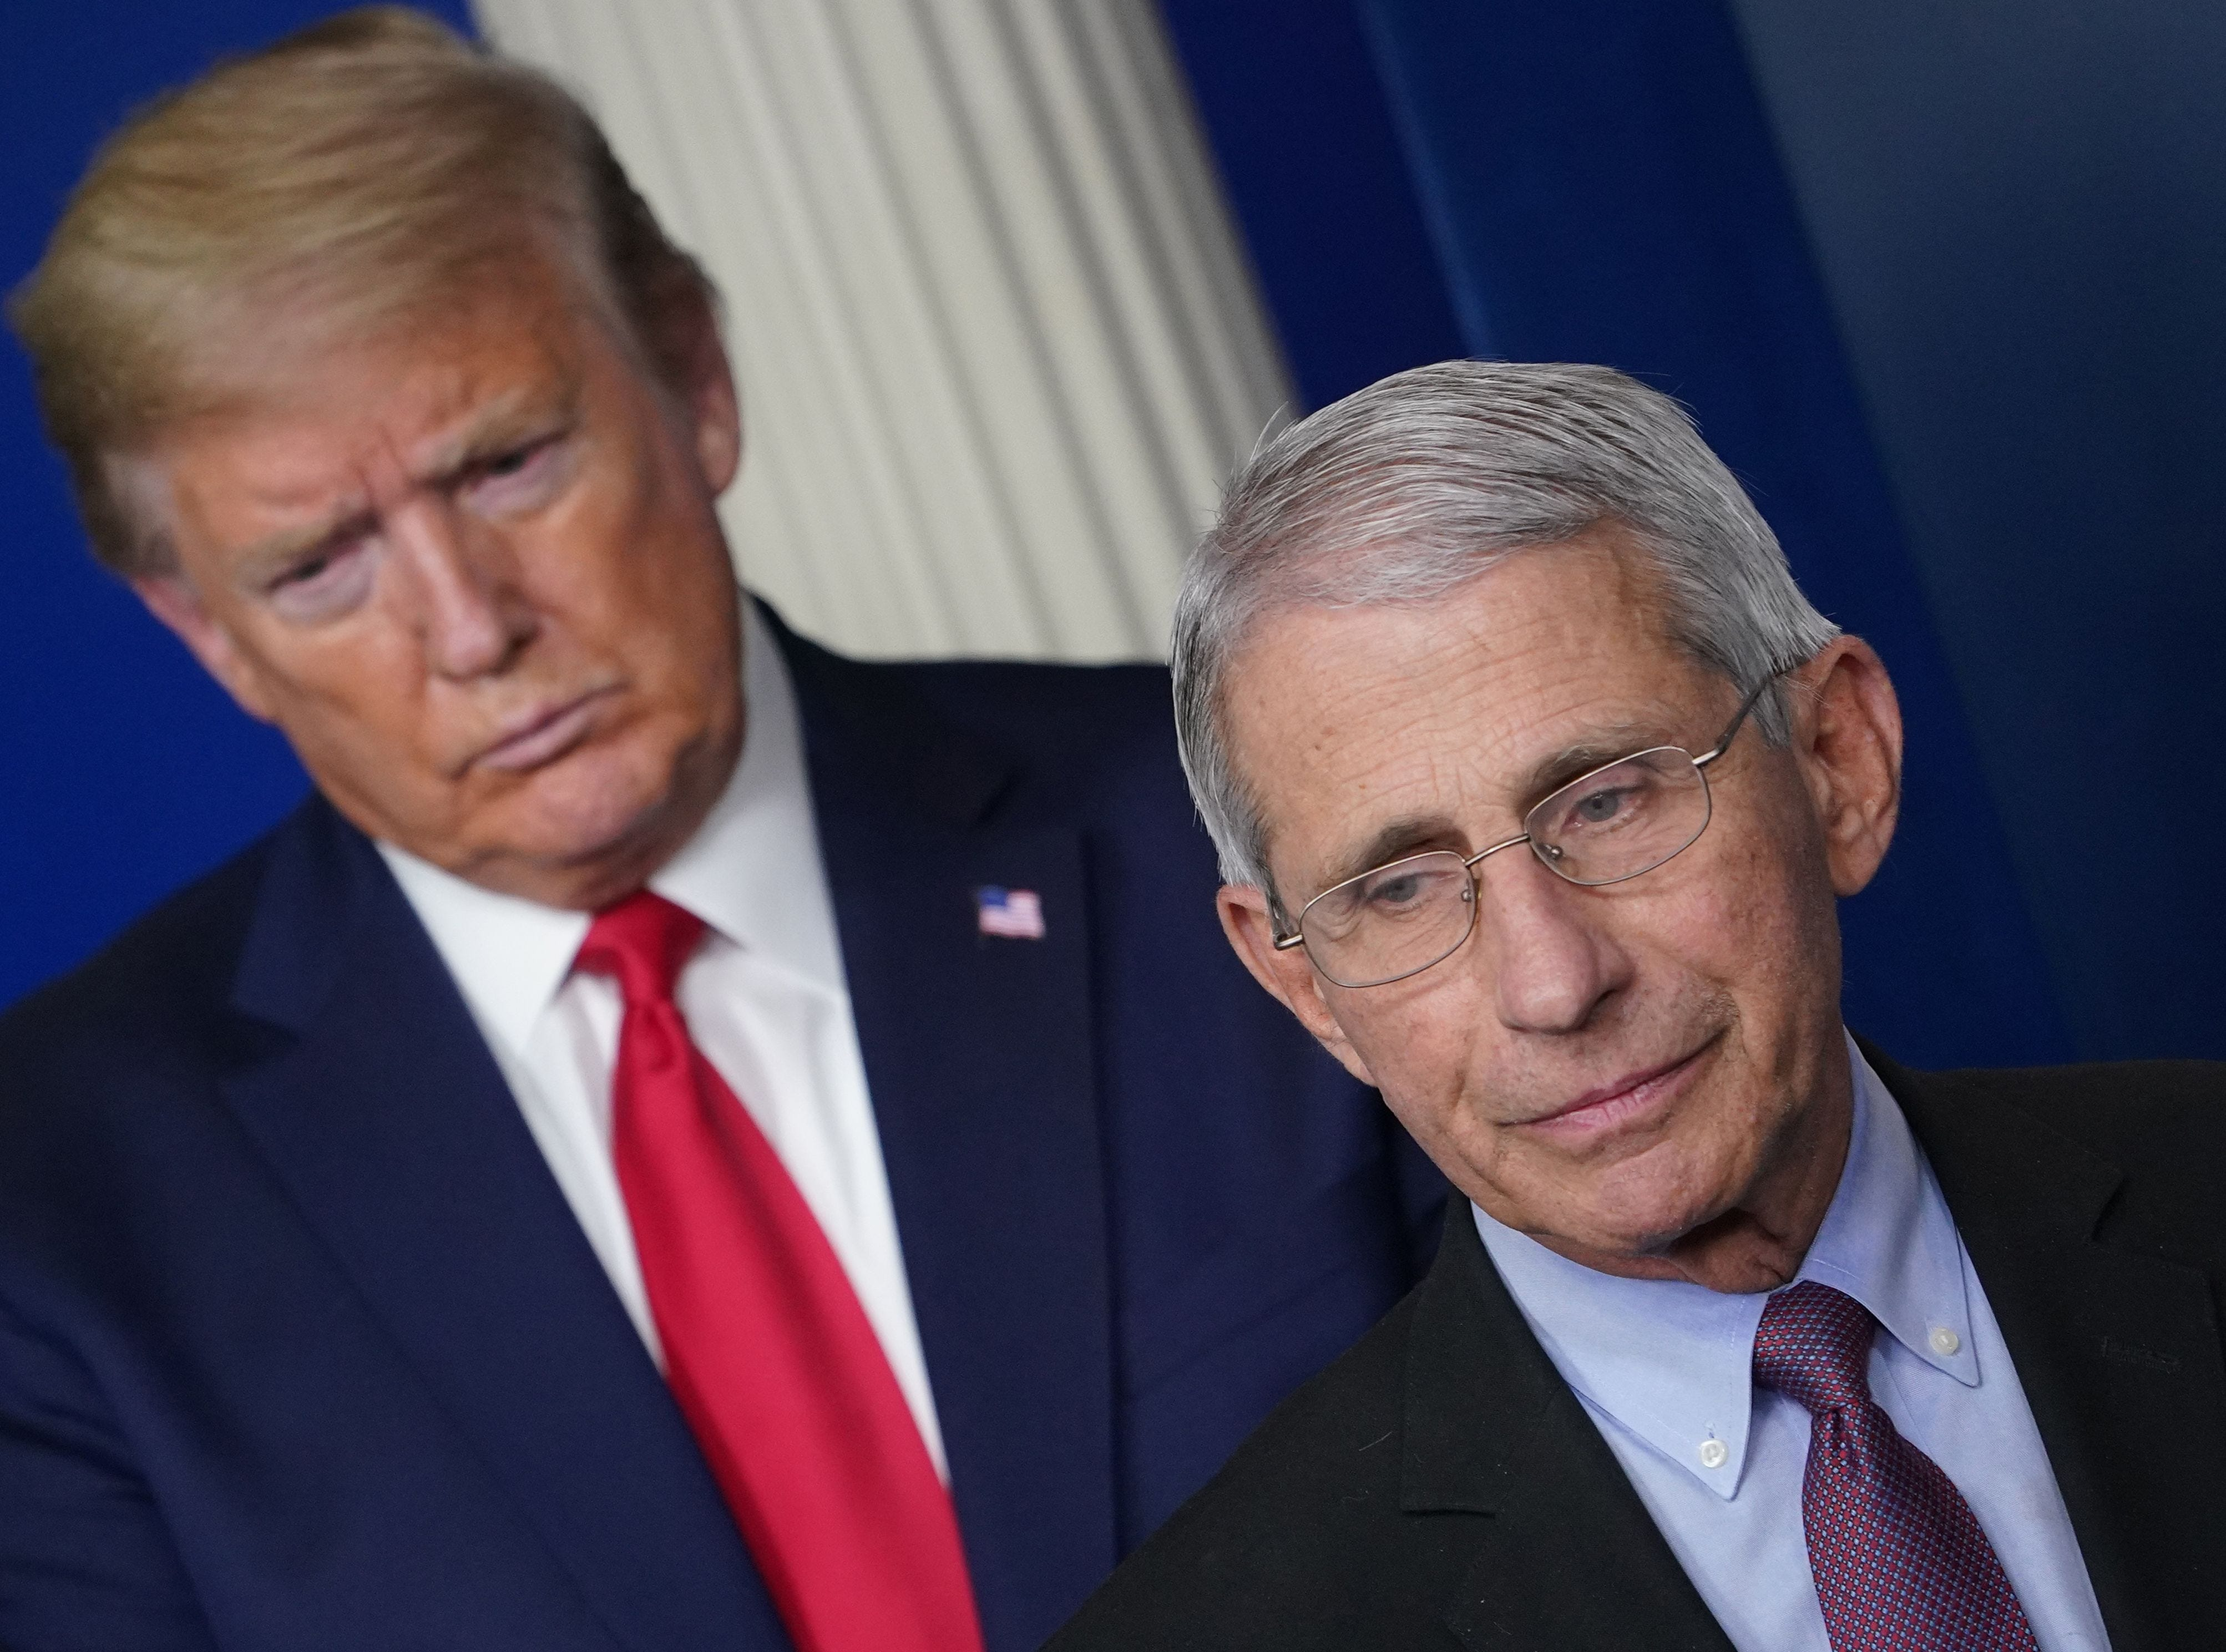 Trump praises Jim Jordan and Anthony Fauci after they clashed during coronavirus hearing